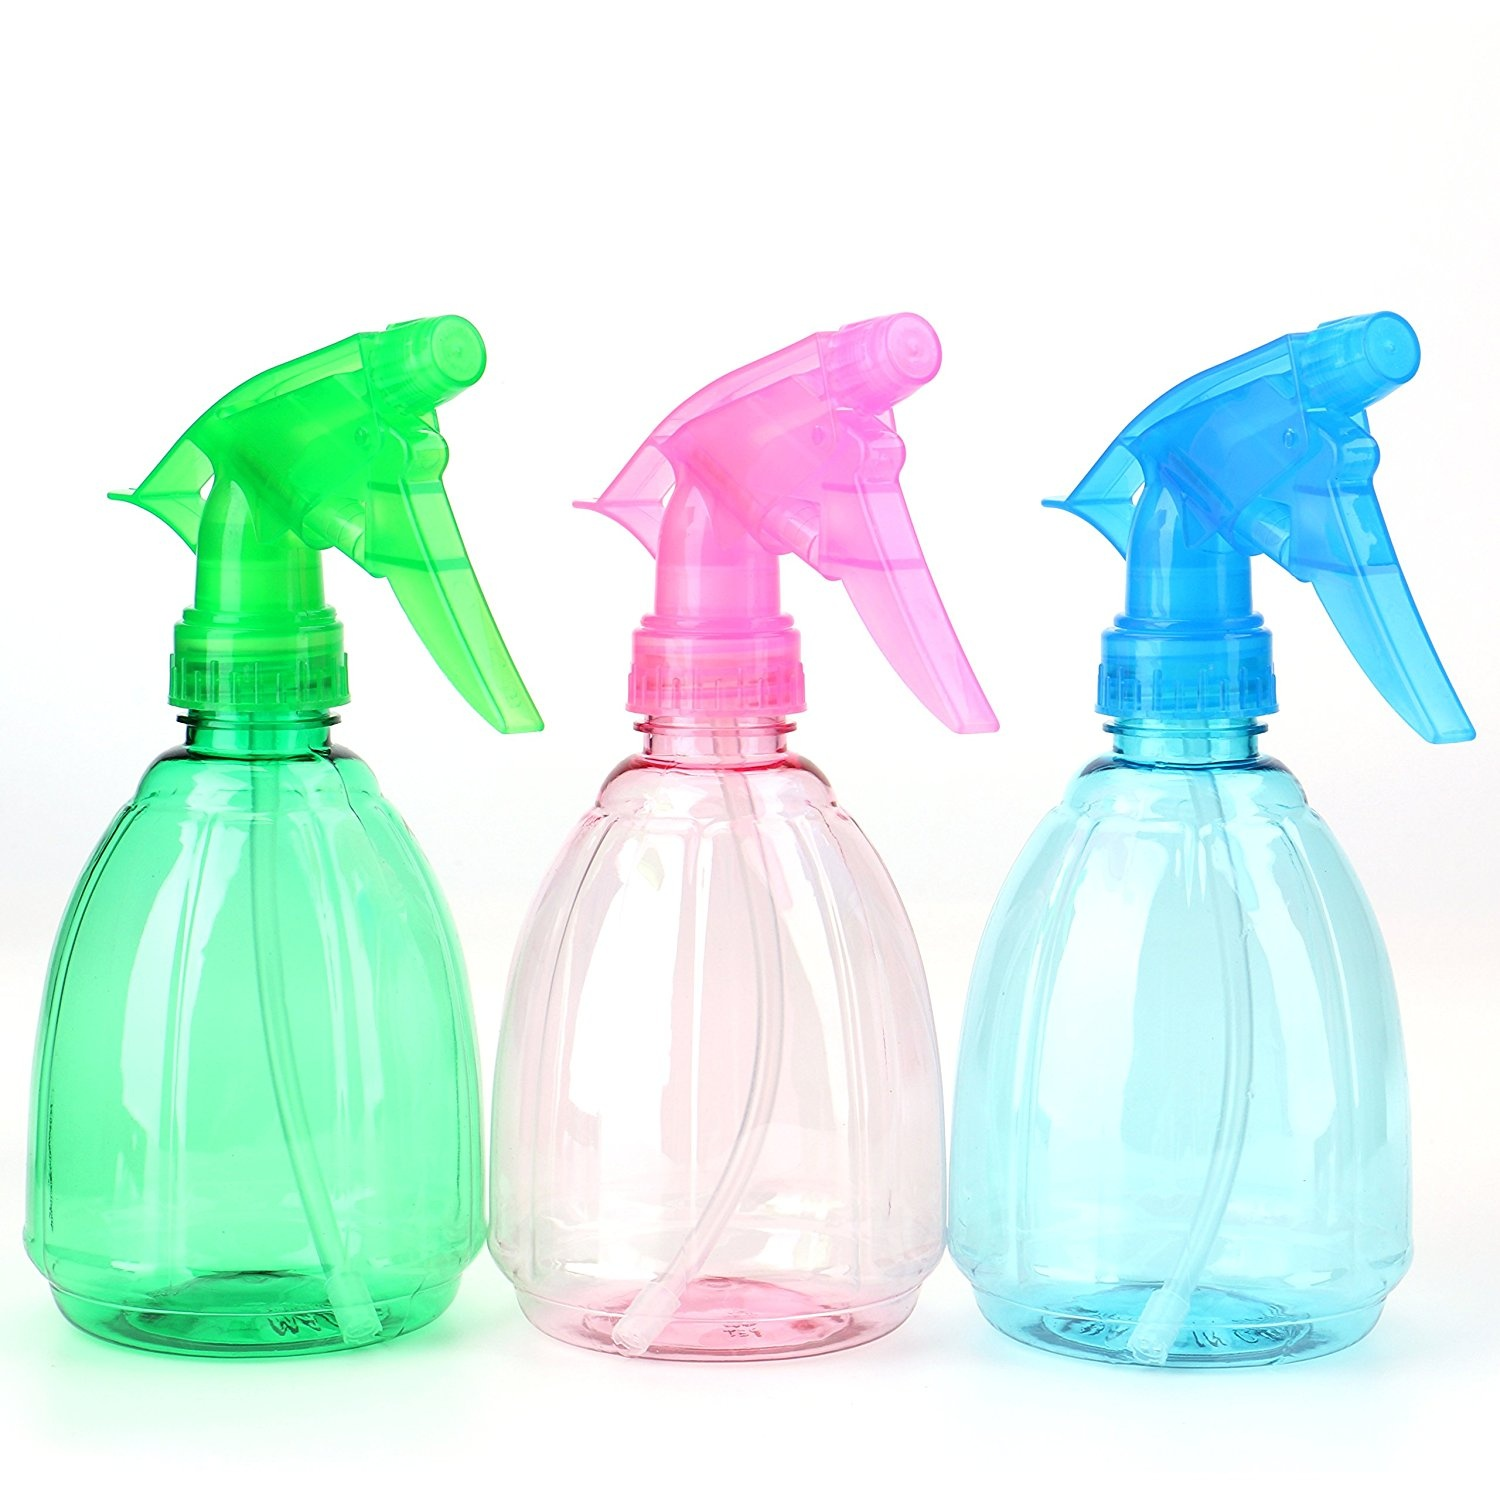 947431b696af Bekith 9 Pack 350ml Empty Plastic Spray Bottles Multi Purpose Use Sprayers  Assorted Colours